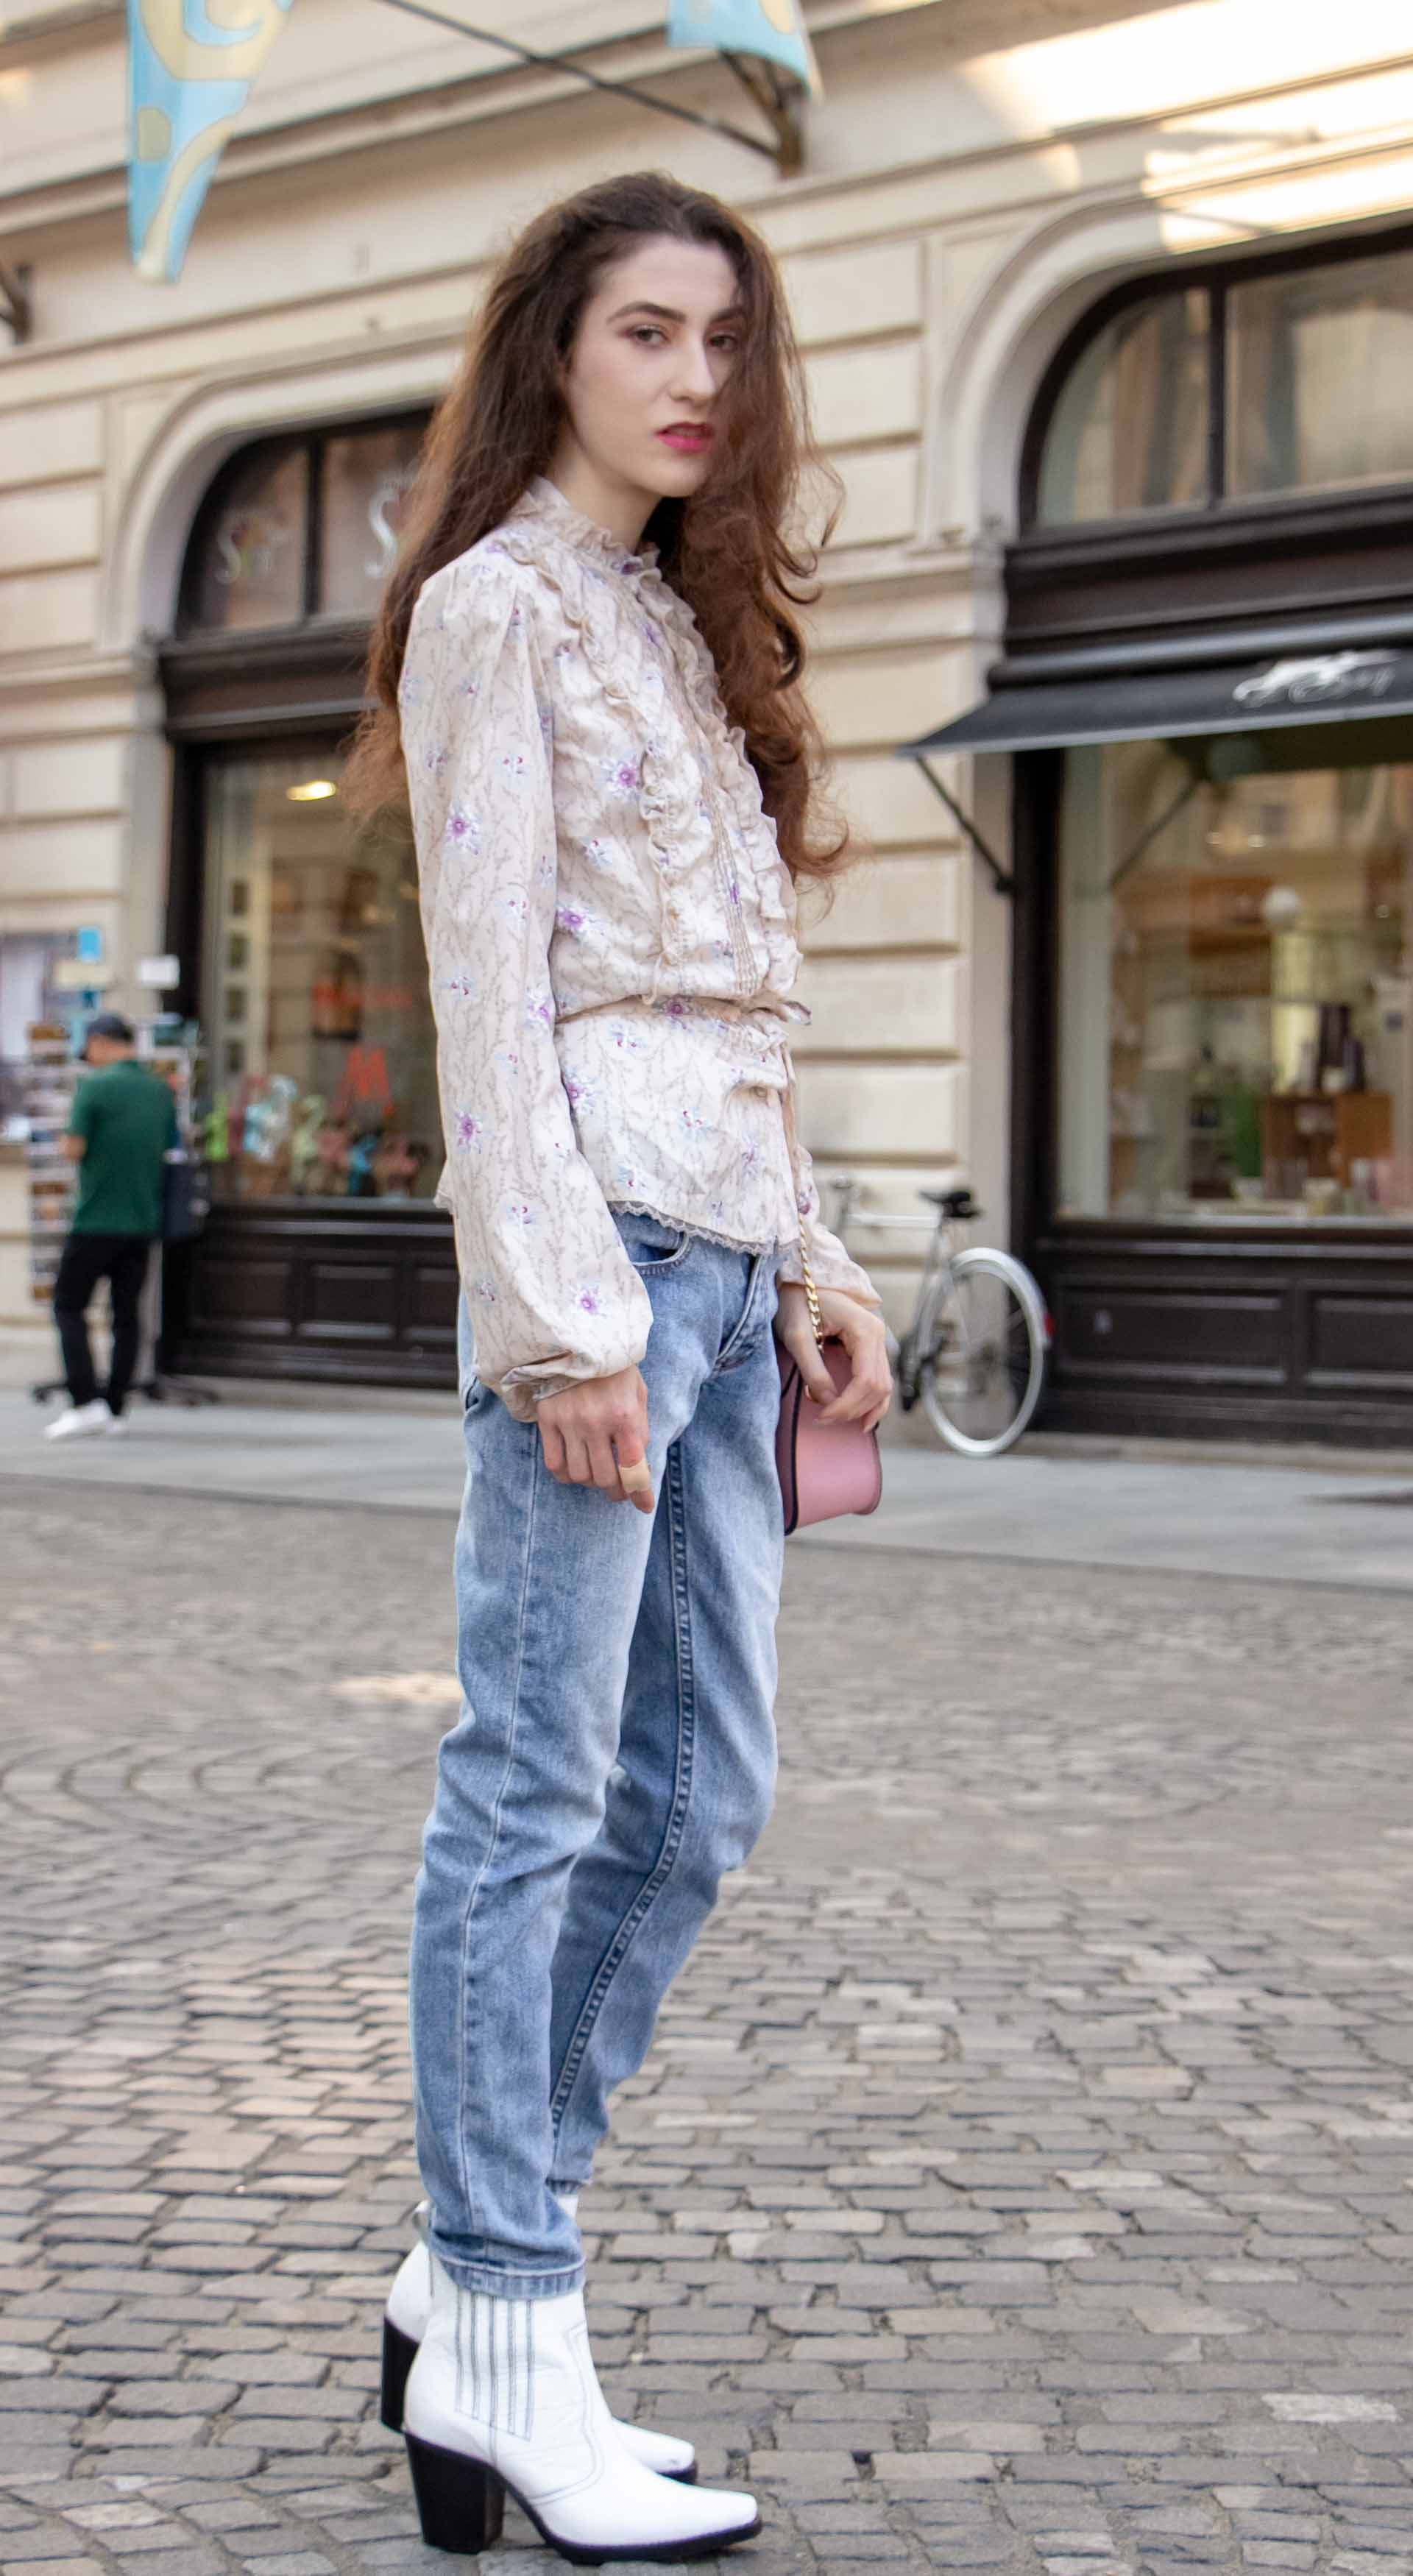 Beautiful Slovenian Fashion Blogger Veronika Lipar of Brunette from Wall dressed in white Ganni Western boots, floral long sleeved Prairie shirt, A.P.C. blue jeans on the street in autumn in Ljubljana